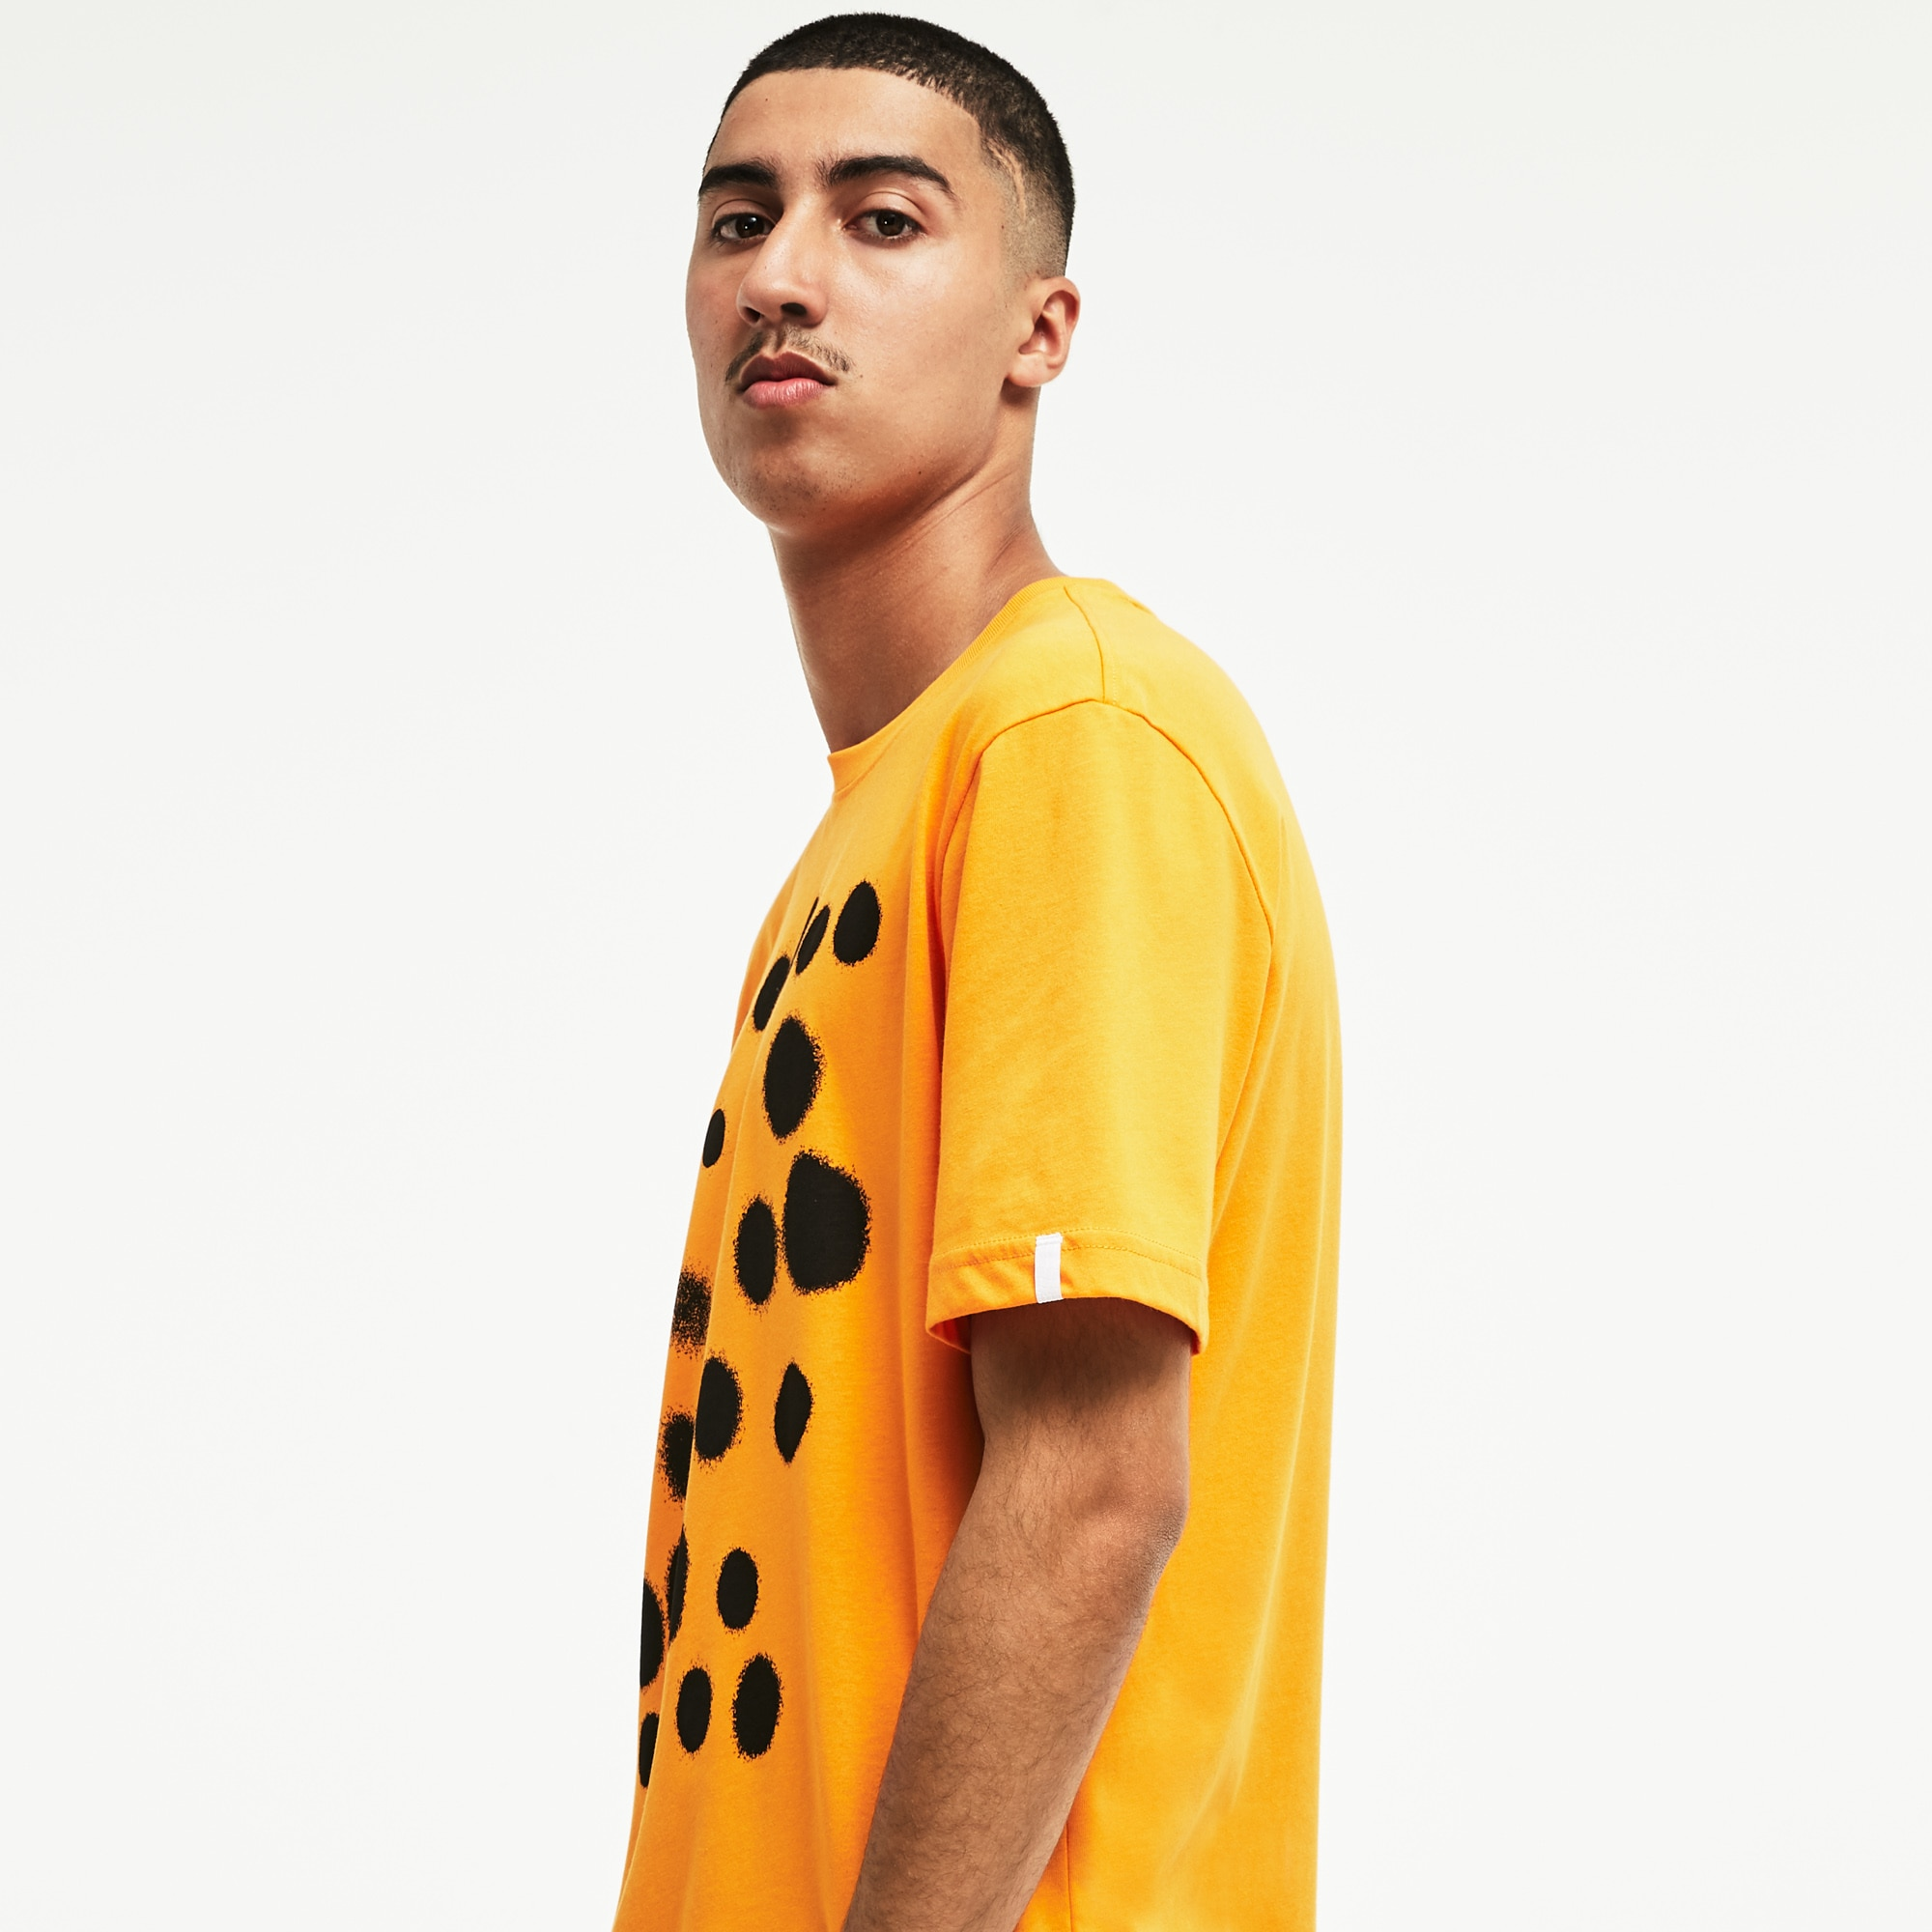 Men's Lacoste LIVE Crew Neck Spray Paint Print Jersey T-shirt